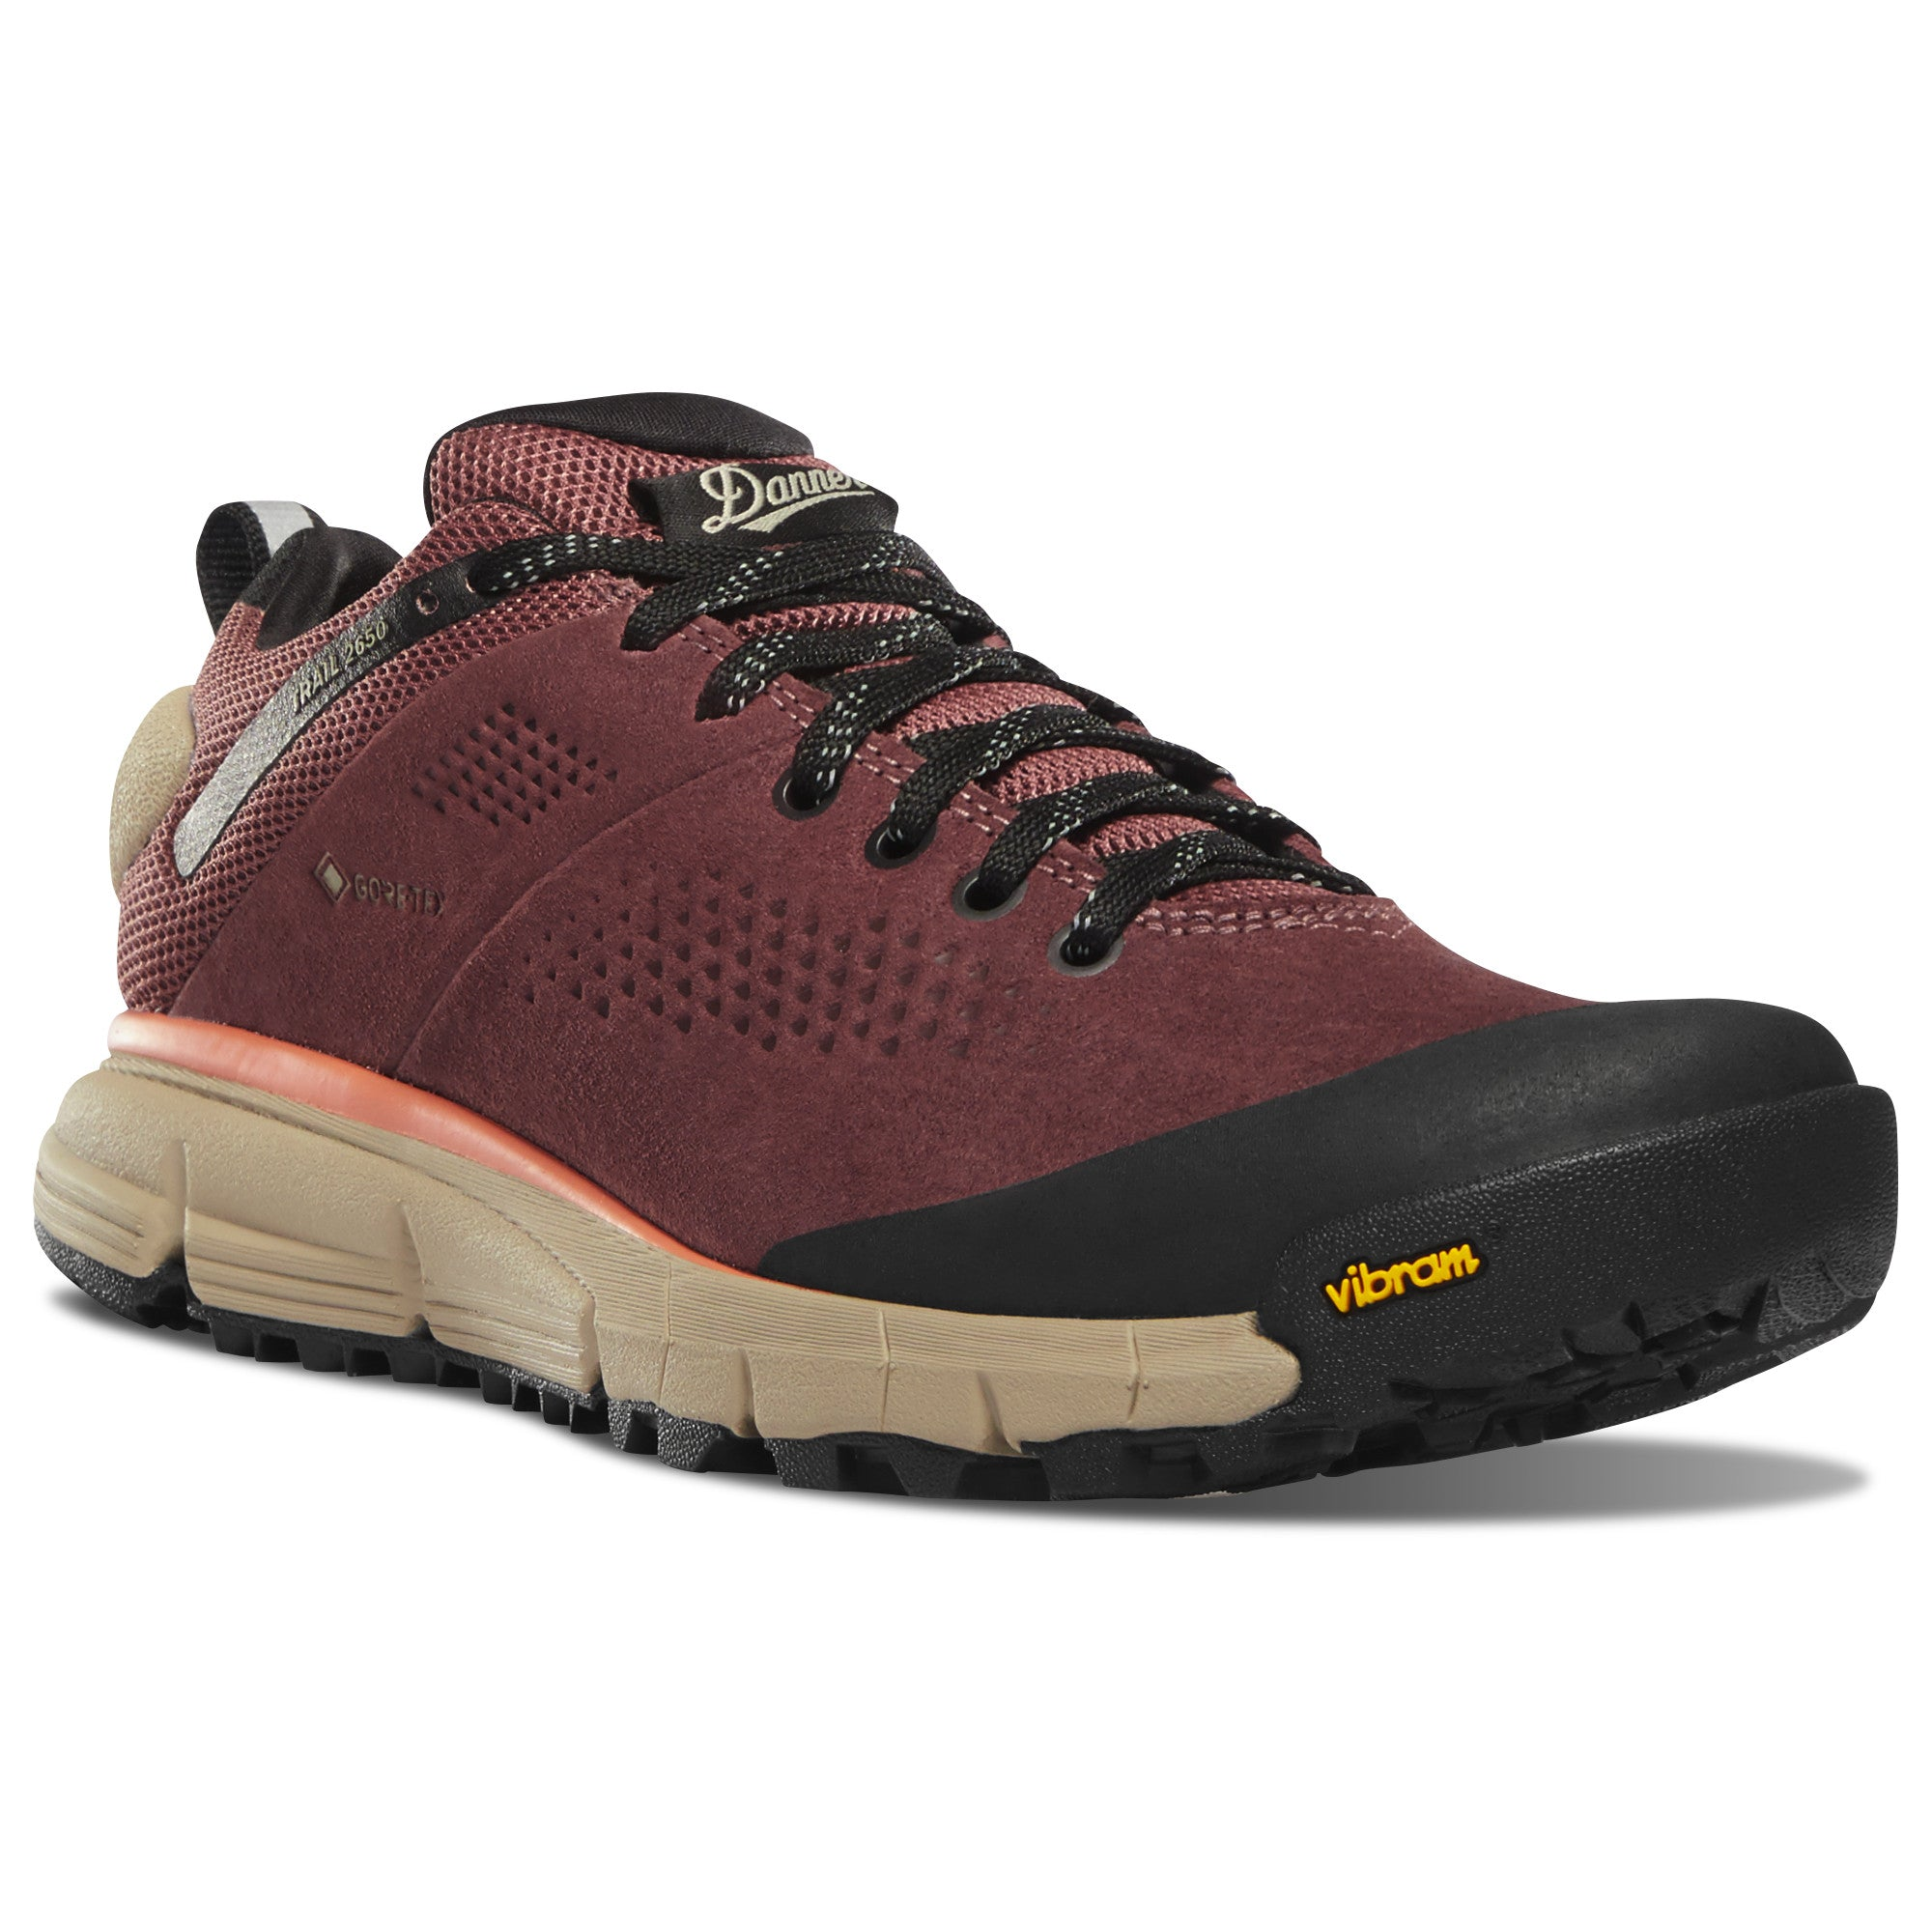 "Danner Women's Trail 2650 3"" Gore-Tex Waterproof Hiking Shoe in Mauve/Salmon from the side"